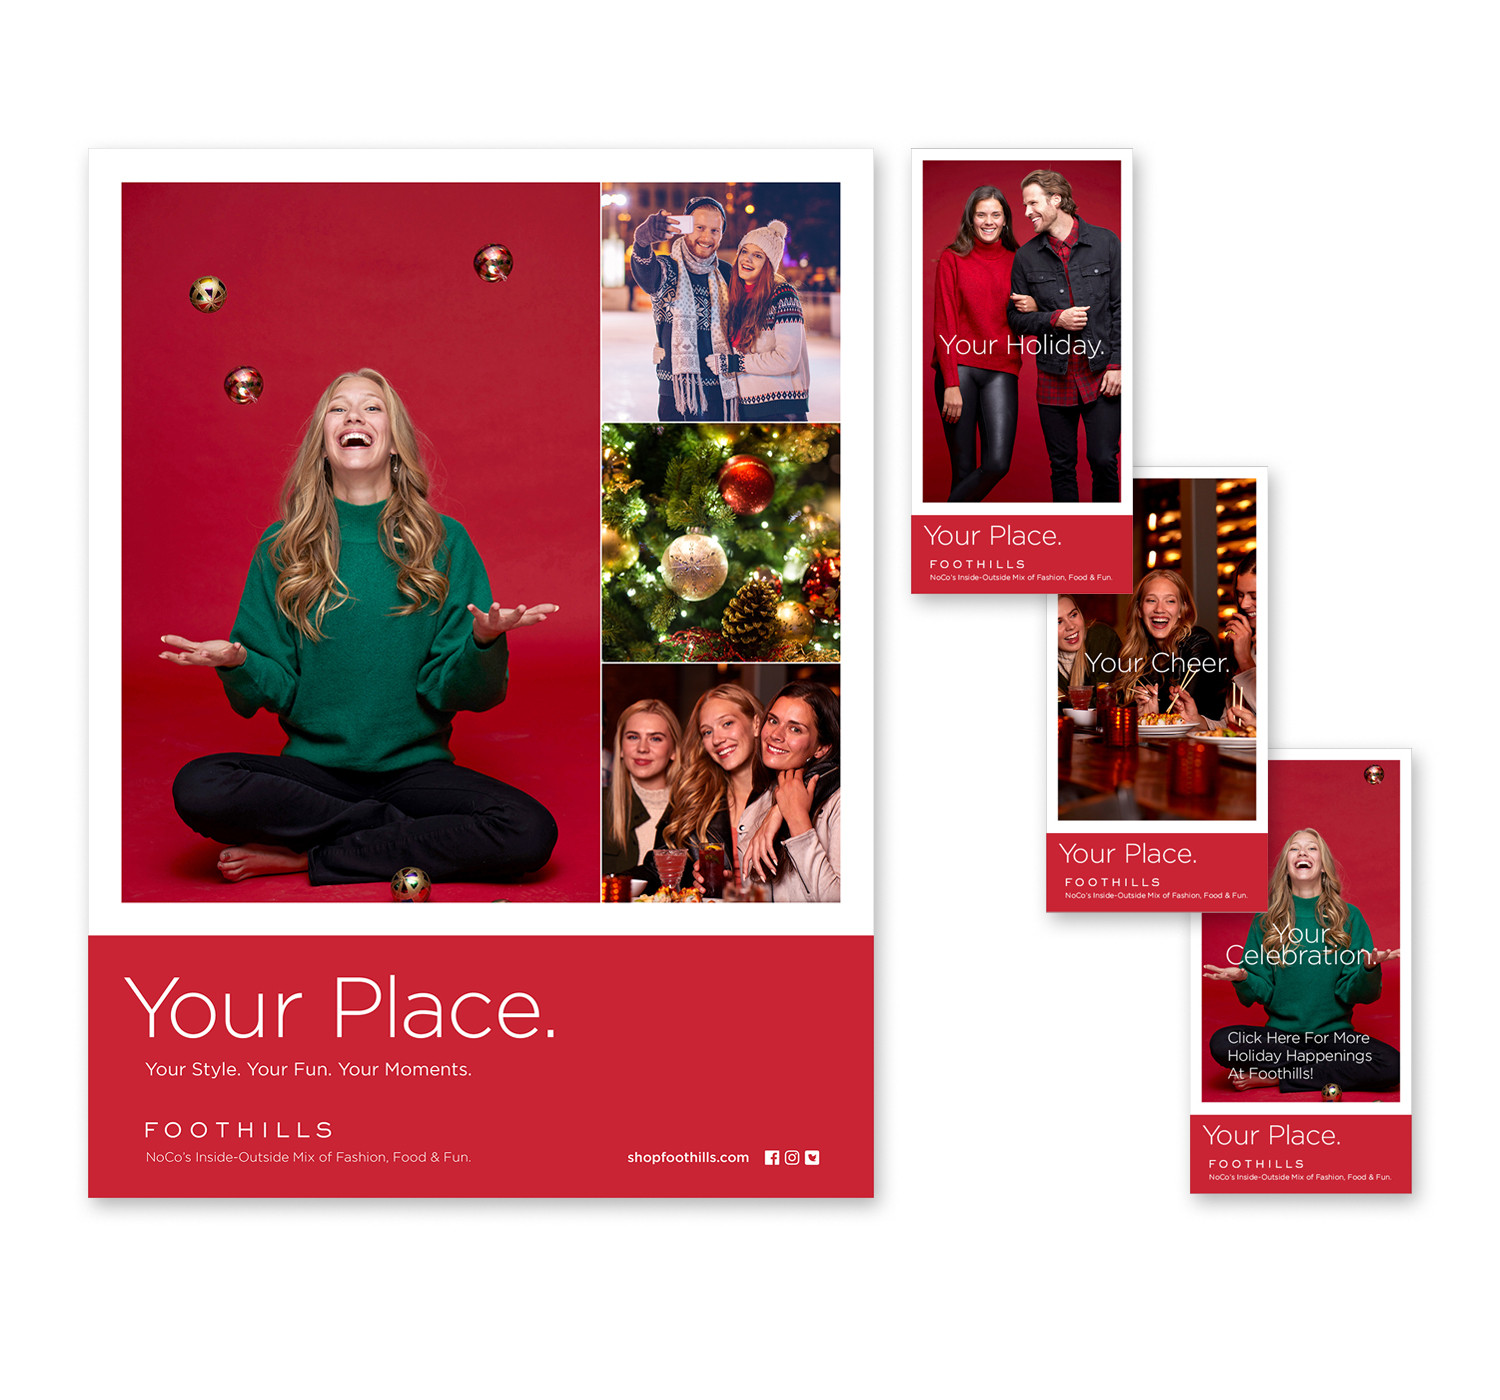 Foothills Holiday Campaign